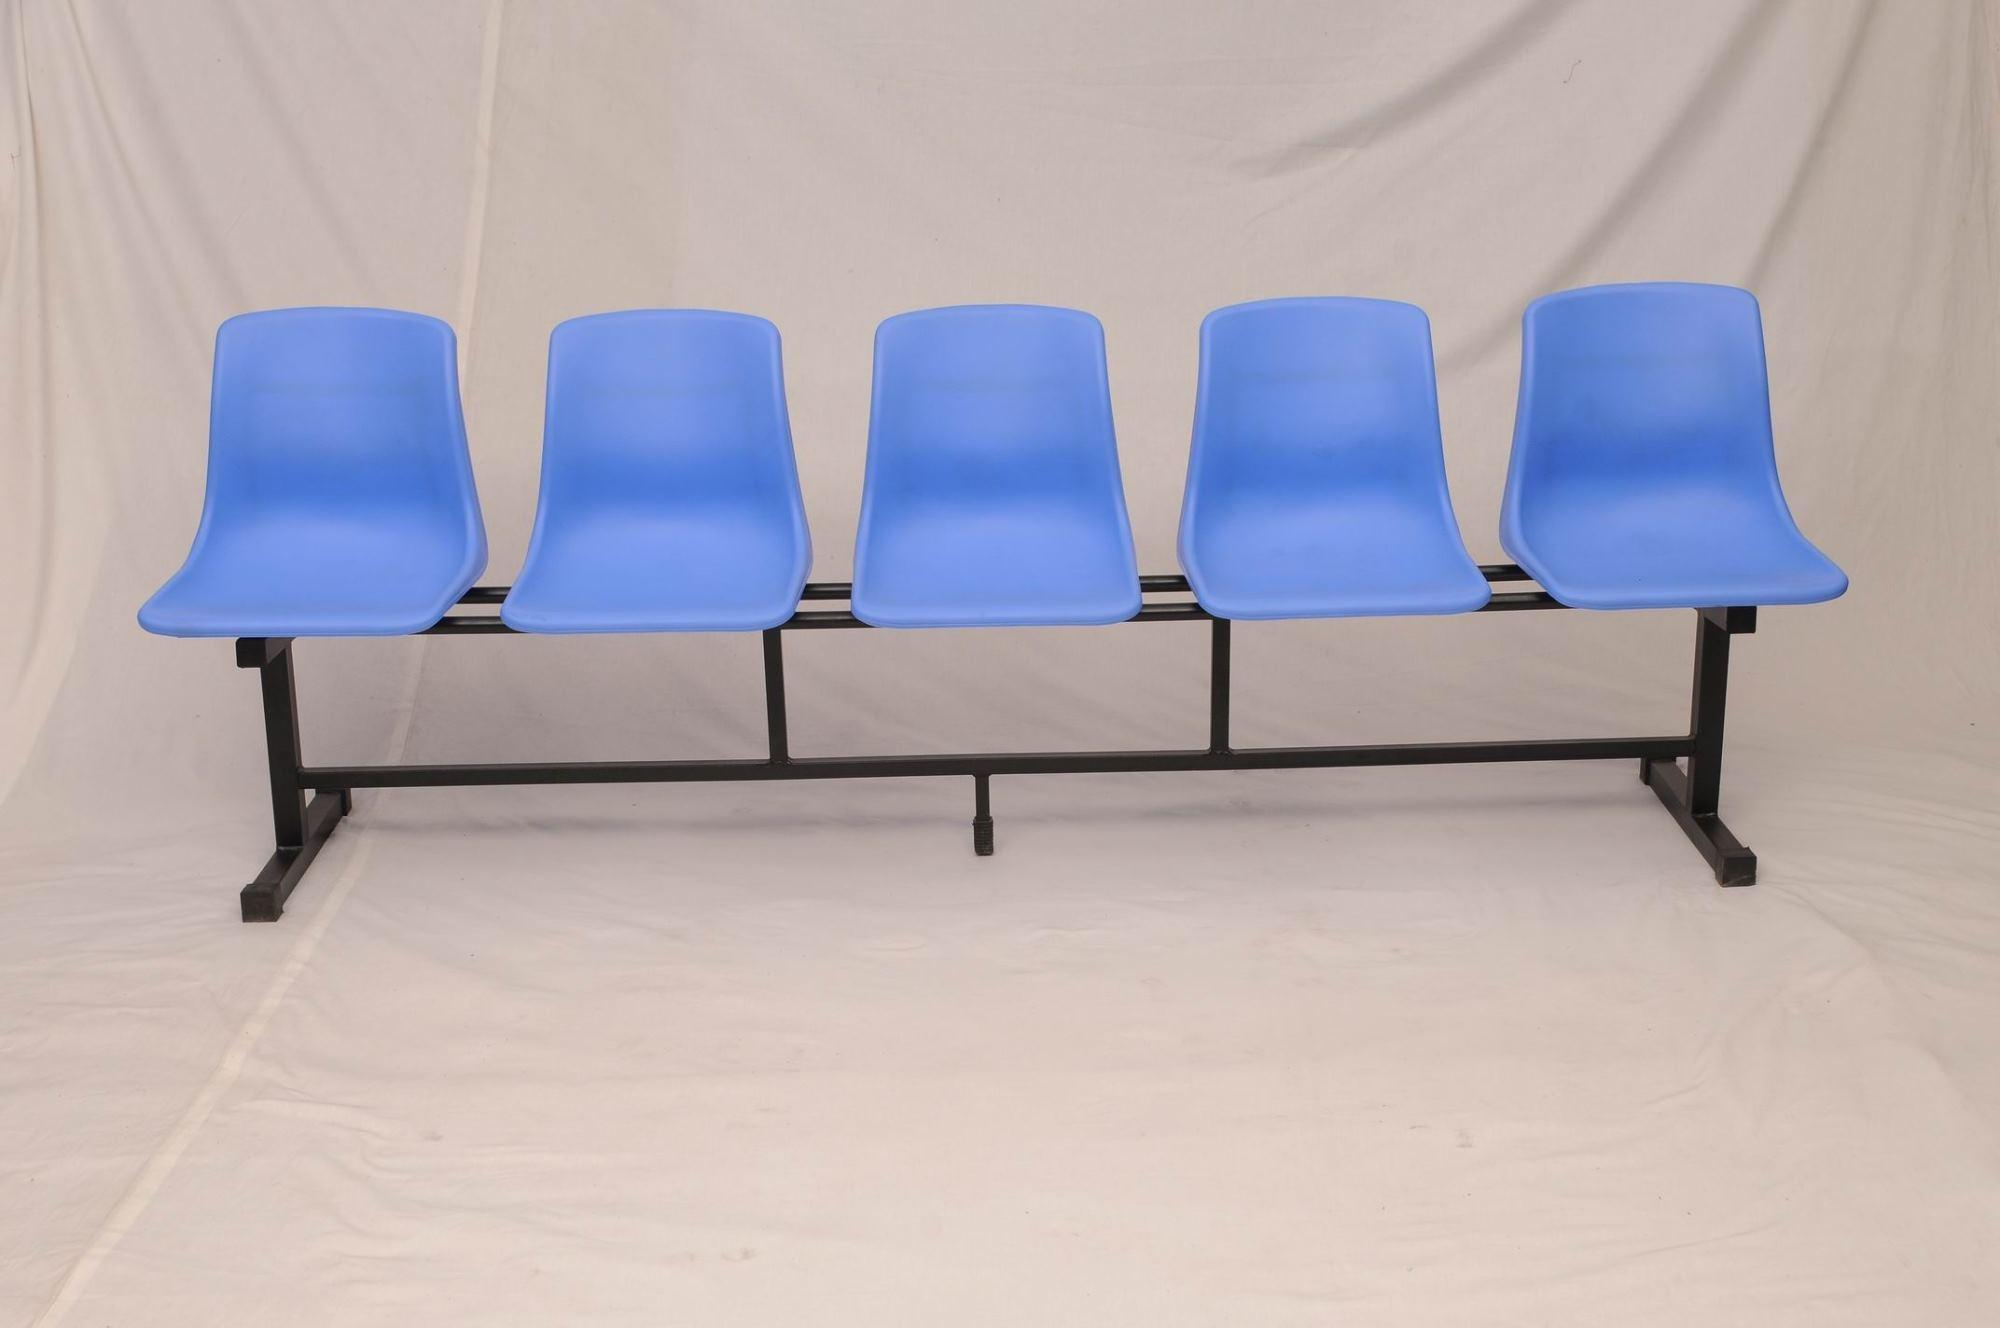 Waiting Furniture Series-CH-05B Blue